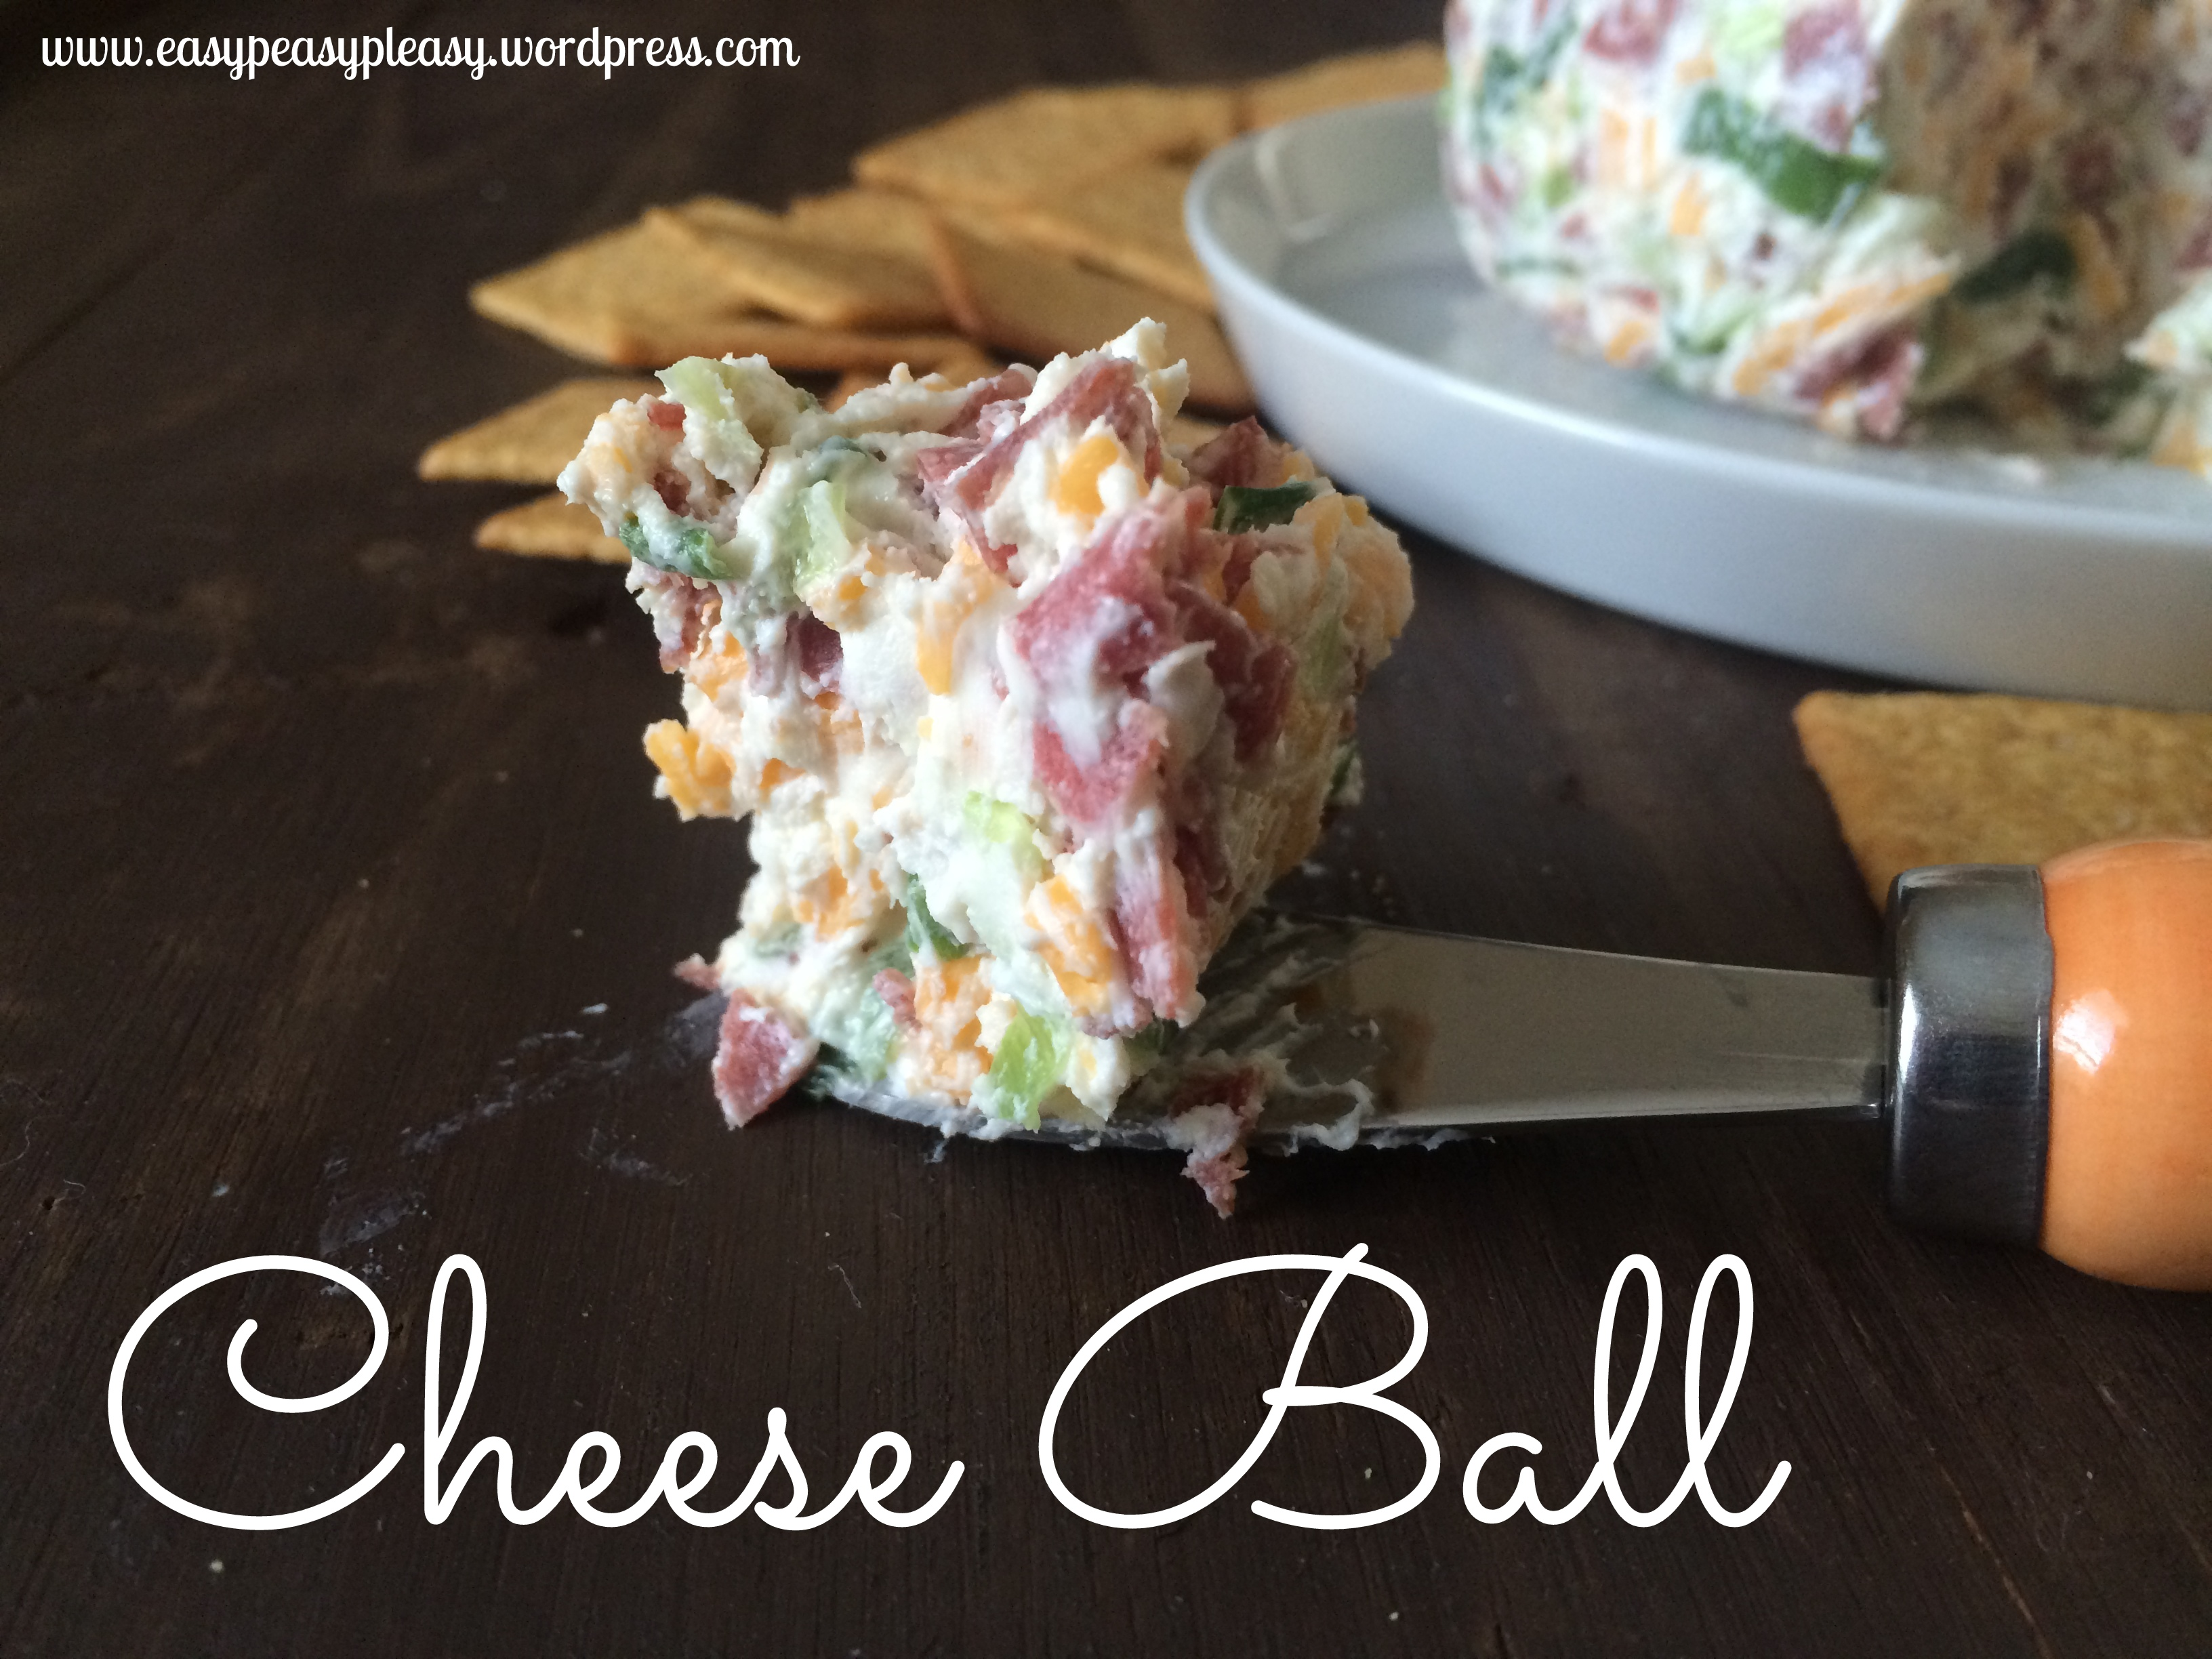 This Cheese Ball is a must try with only 4 Ingredients